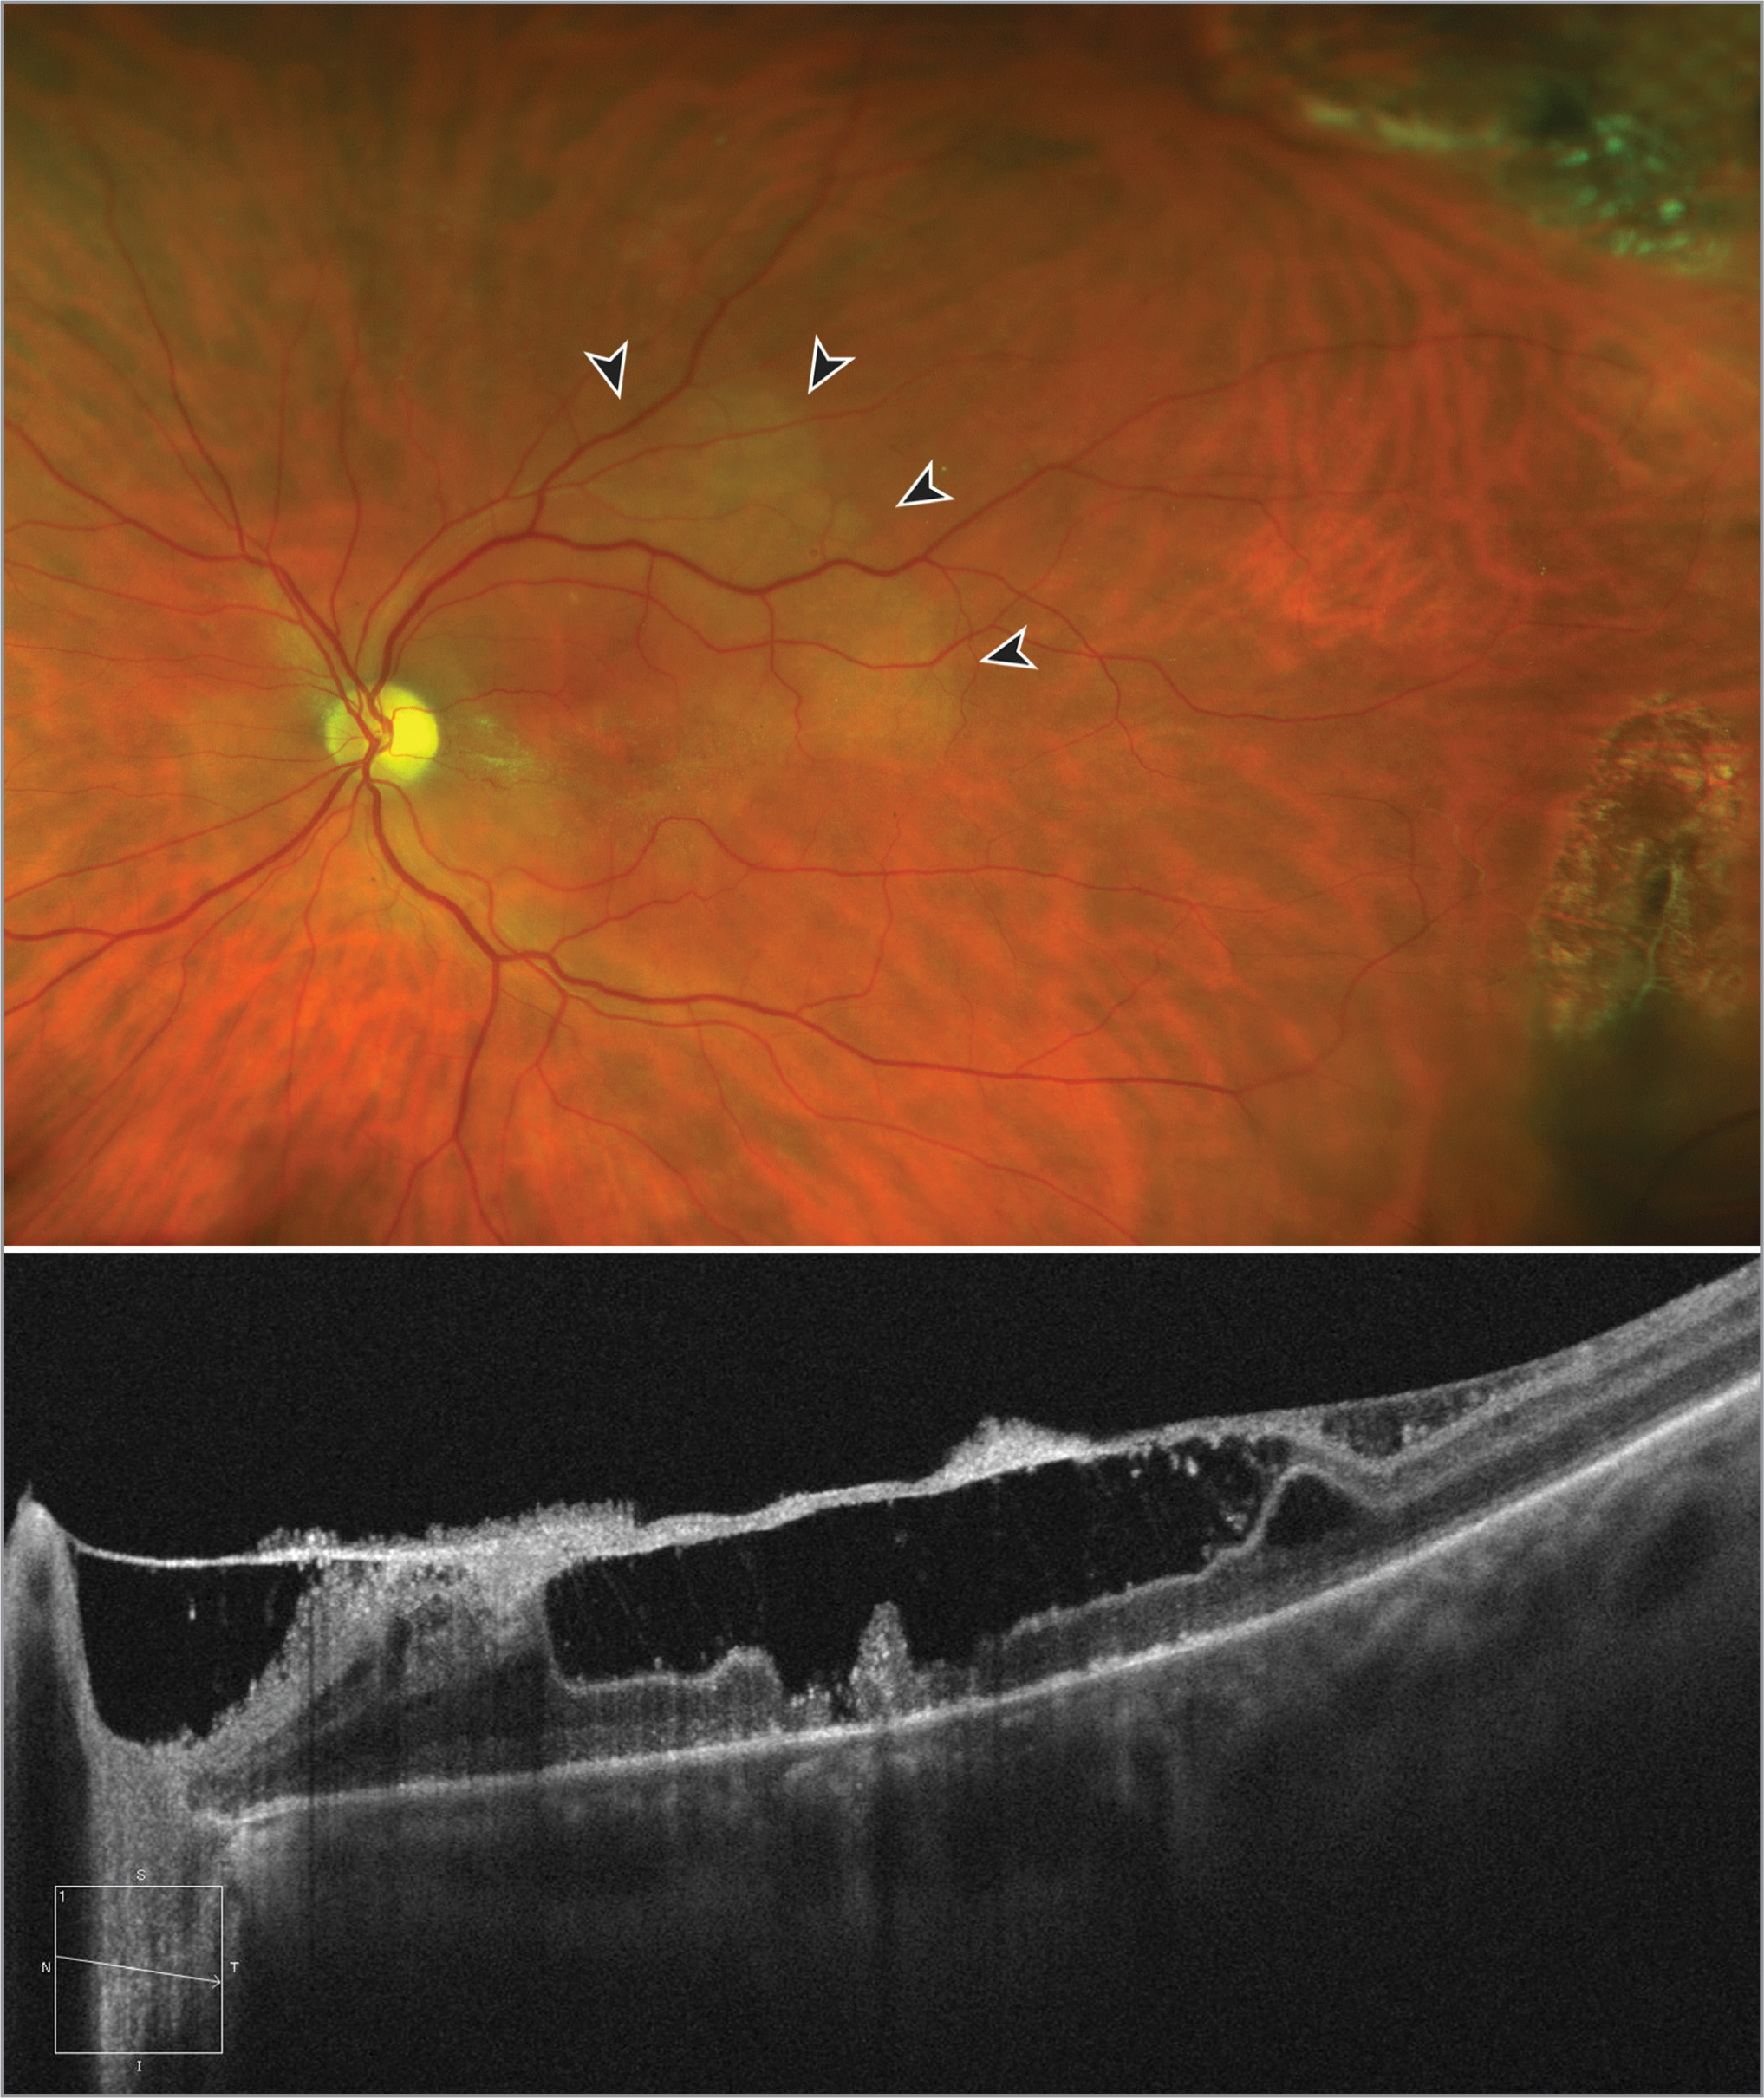 (Top) Widefield colored retinography of the patient. The edema of the internal retinal layers is marked with arrows. At the temporal midperiphery, scars of laser photocoagulation blocking a retinal tear can be found. Note the sectorial pallor of the optic disc. (Bottom) Optical coherence tomography showing the central neurosensory retina destruction.